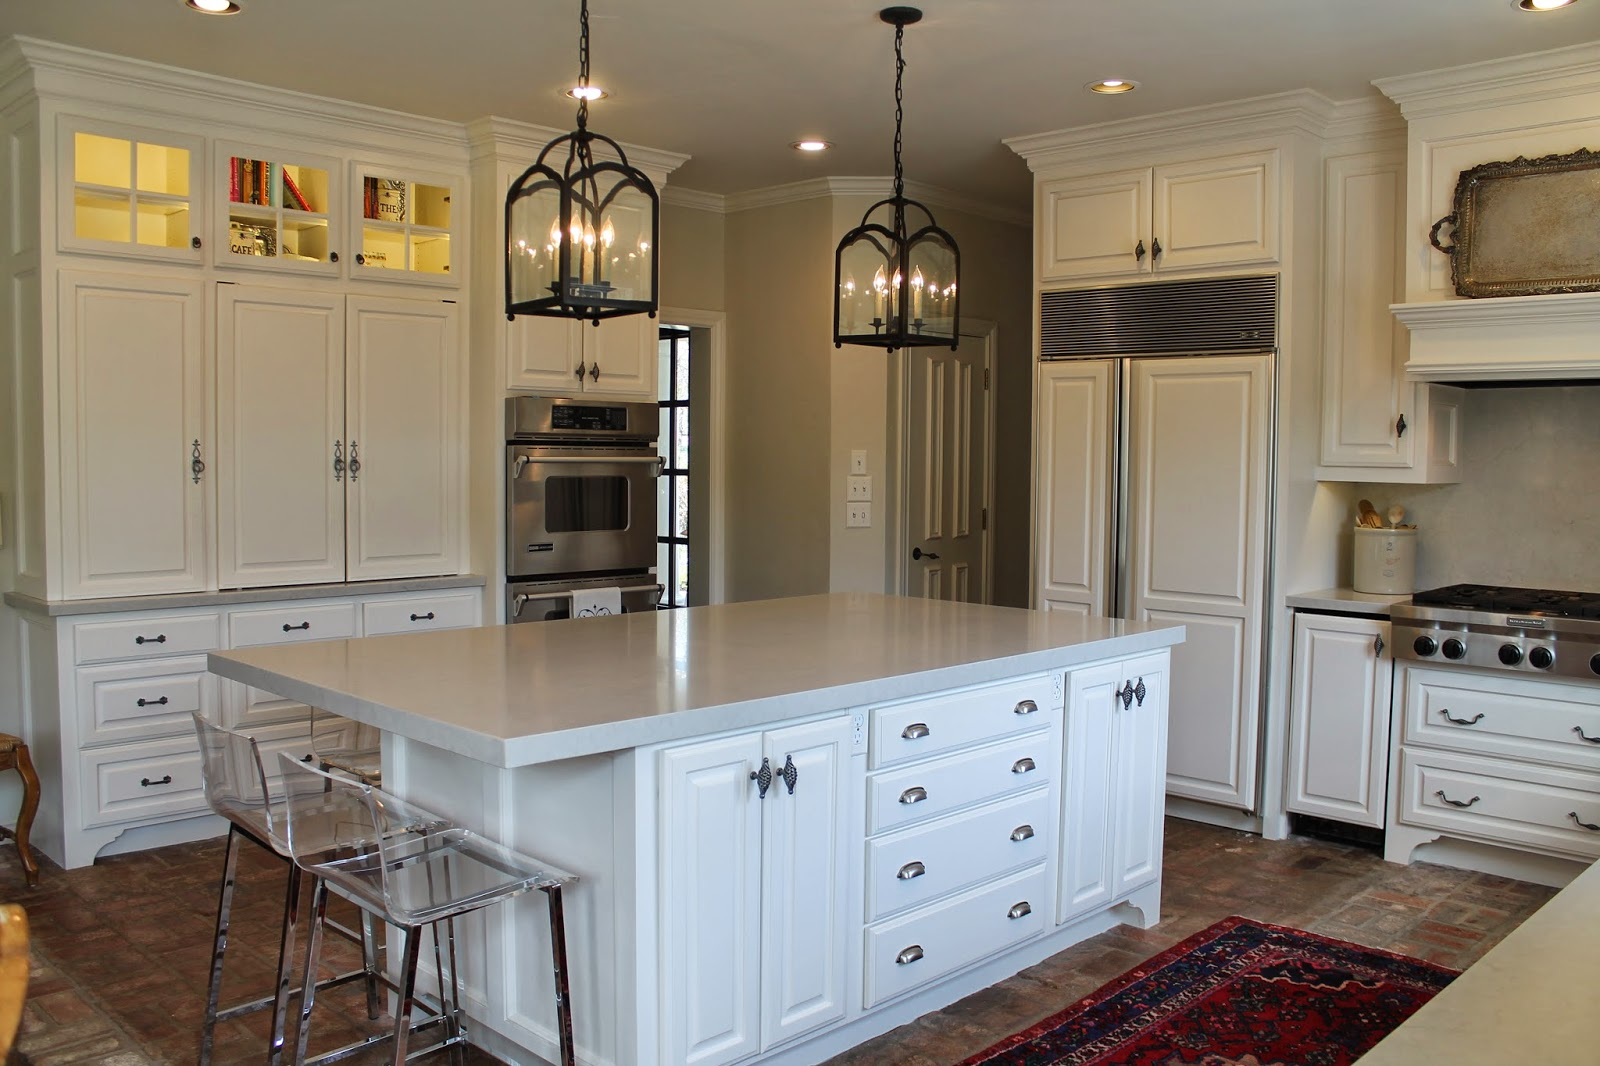 Eleven Gables The Story Of An Kitchen Remodel It Is Cabinets Okc To Go